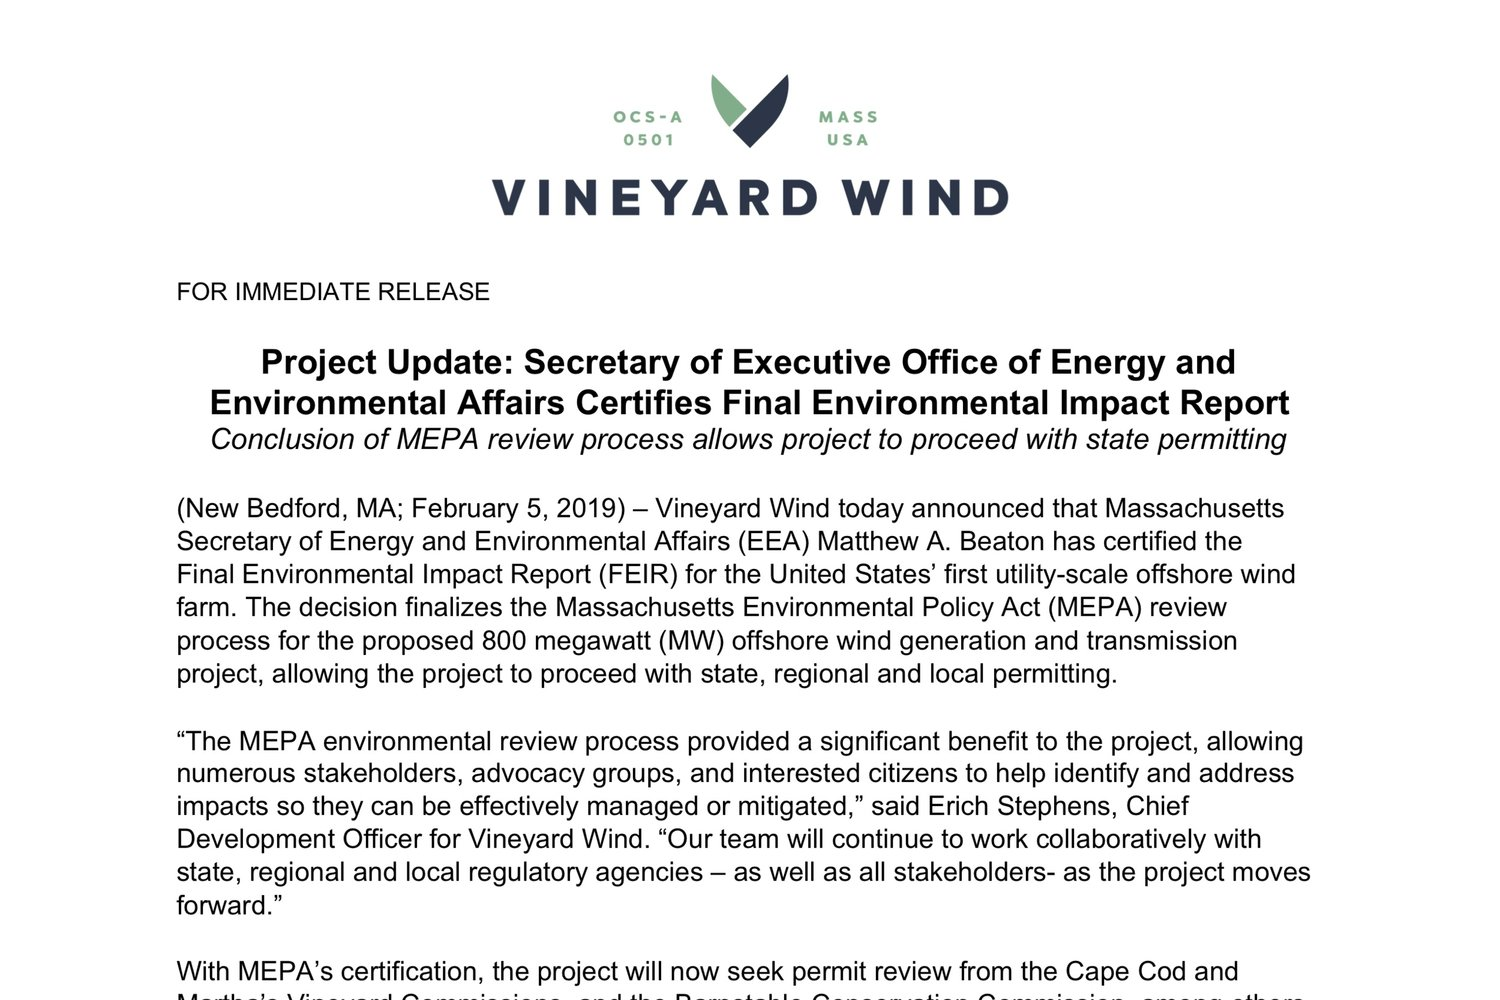 Project Update: Secretary of Executive Office of Energy and